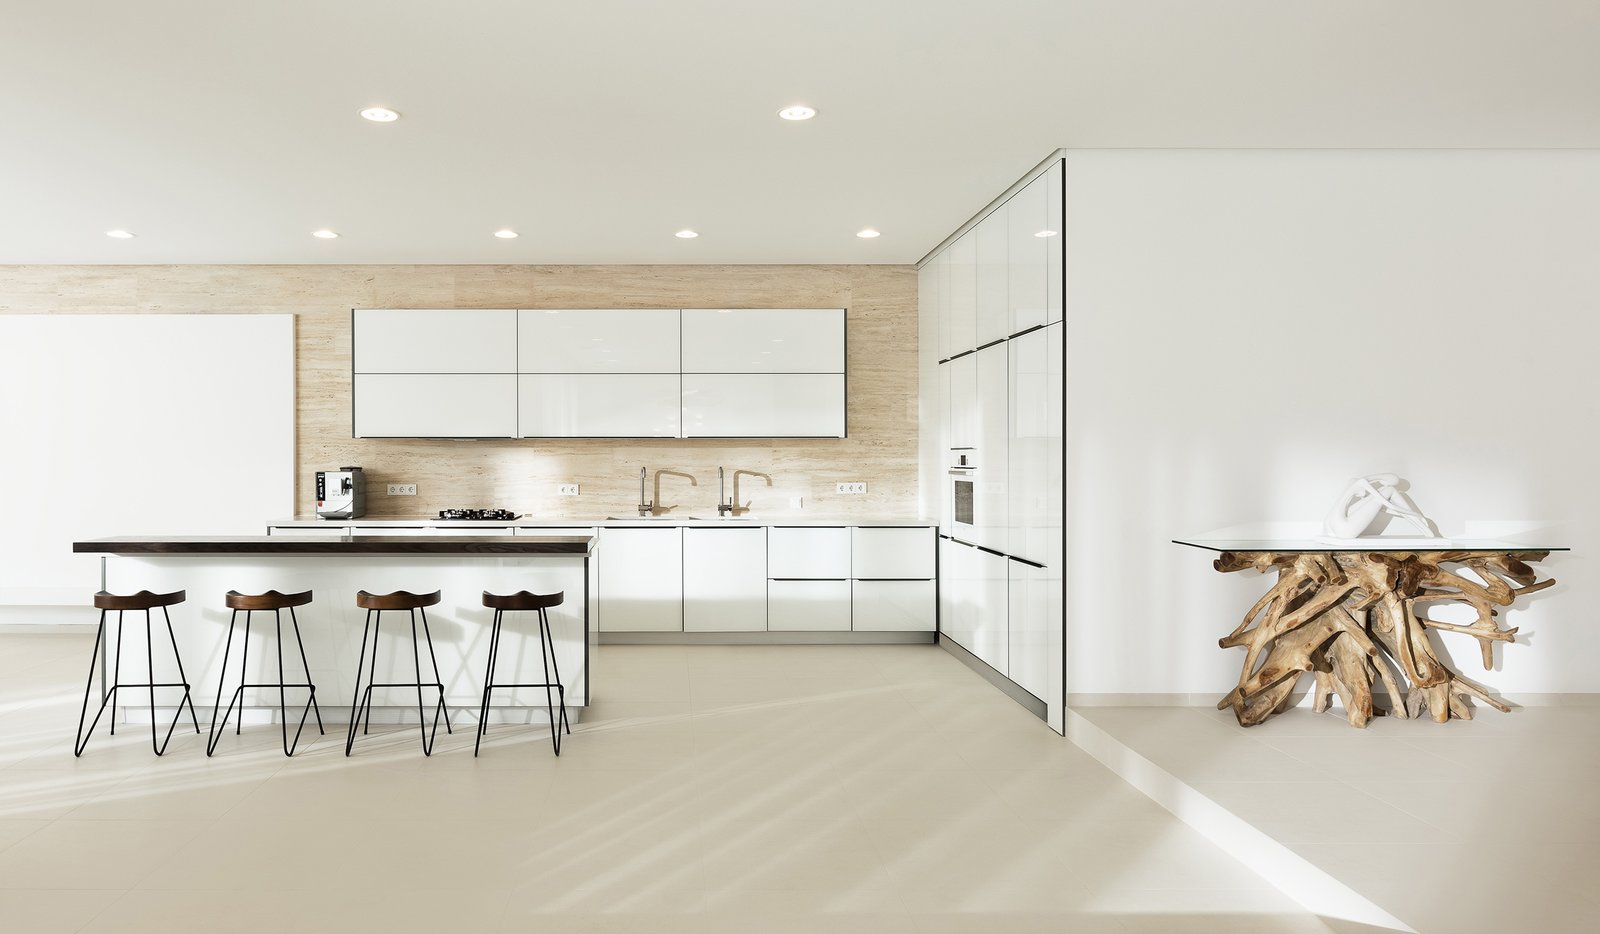 Kitchen, Quartzite, Stone, White, Wood, Metal, Travertine, Porcelain Tile, Stone Slab, Ceiling, Refrigerator, Wall Oven, Microwave, Dishwasher, Ice Maker, Cooktops, and Drop In WH Residence | M3 Architects  Best Kitchen Metal Quartzite Photos from WH Residence